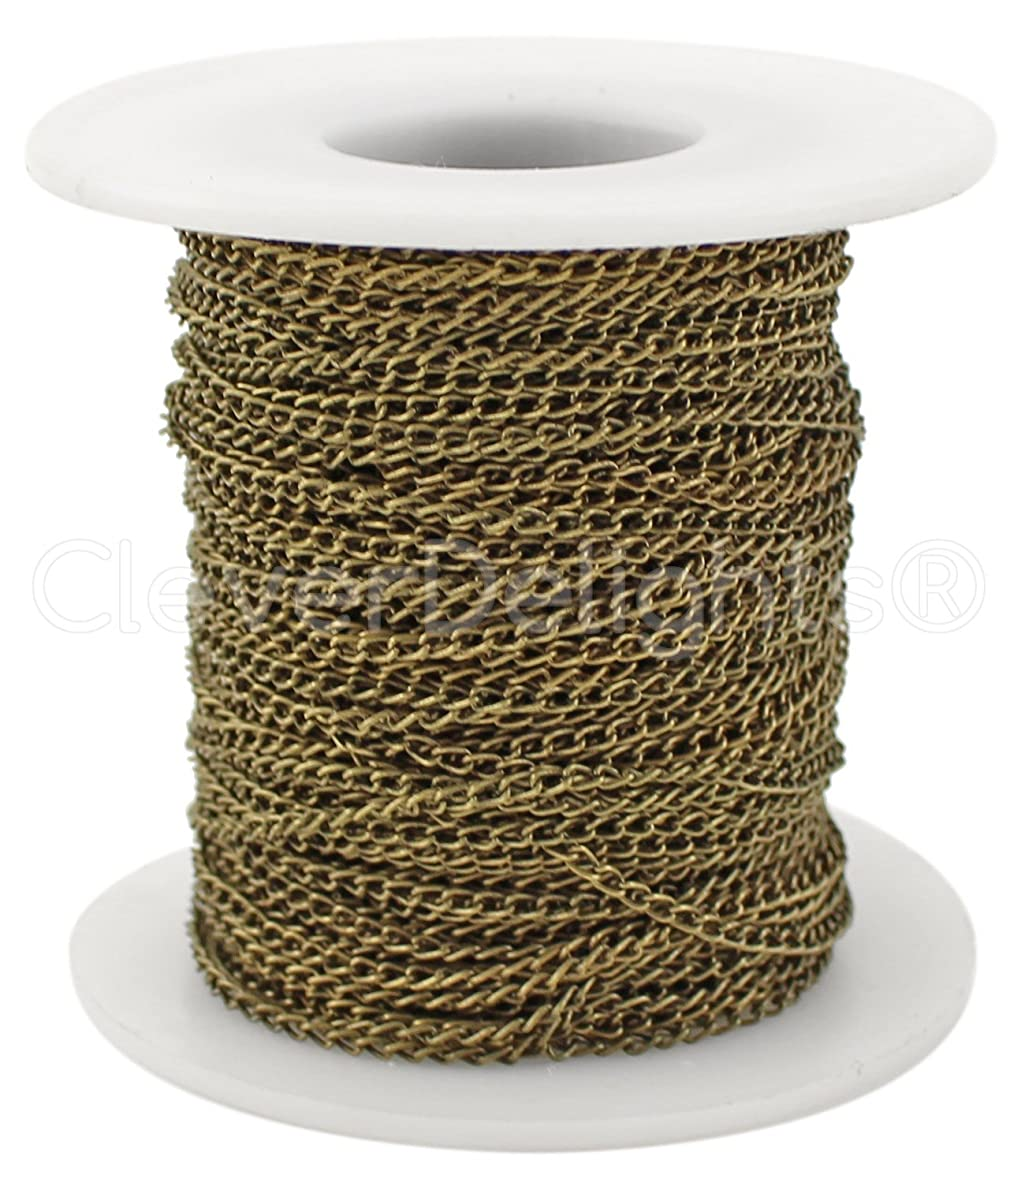 CleverDelights Curb Chain Spool - 2x3mm Link - Antique Bronze Color - 30 Feet - Bulk Jewelry Dainty Chain Roll